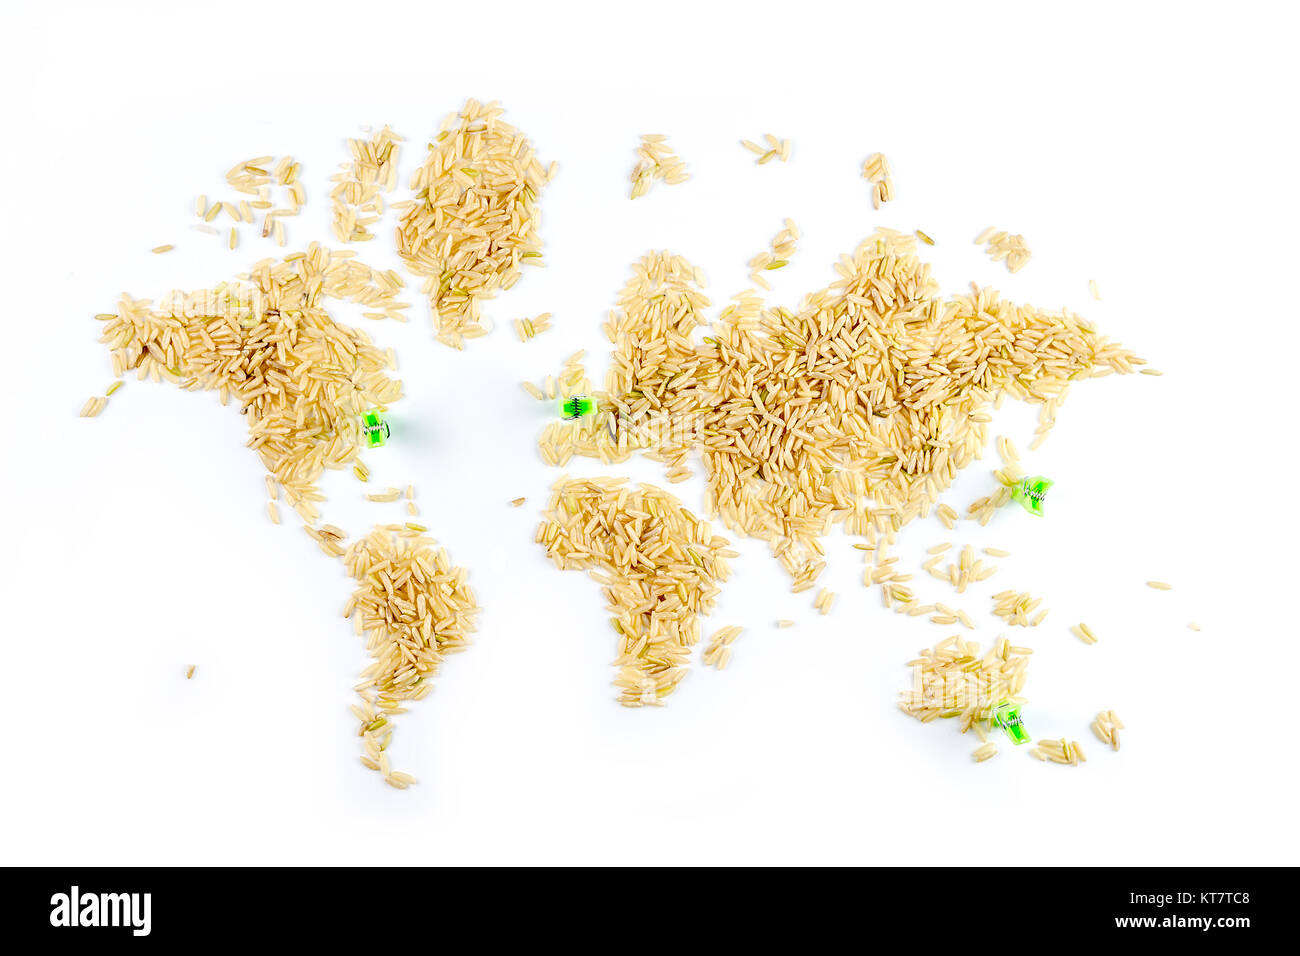 map of the world made of raw natural rice on white background with little green clothes pegs pointing sydney, tokio, - Stock Image